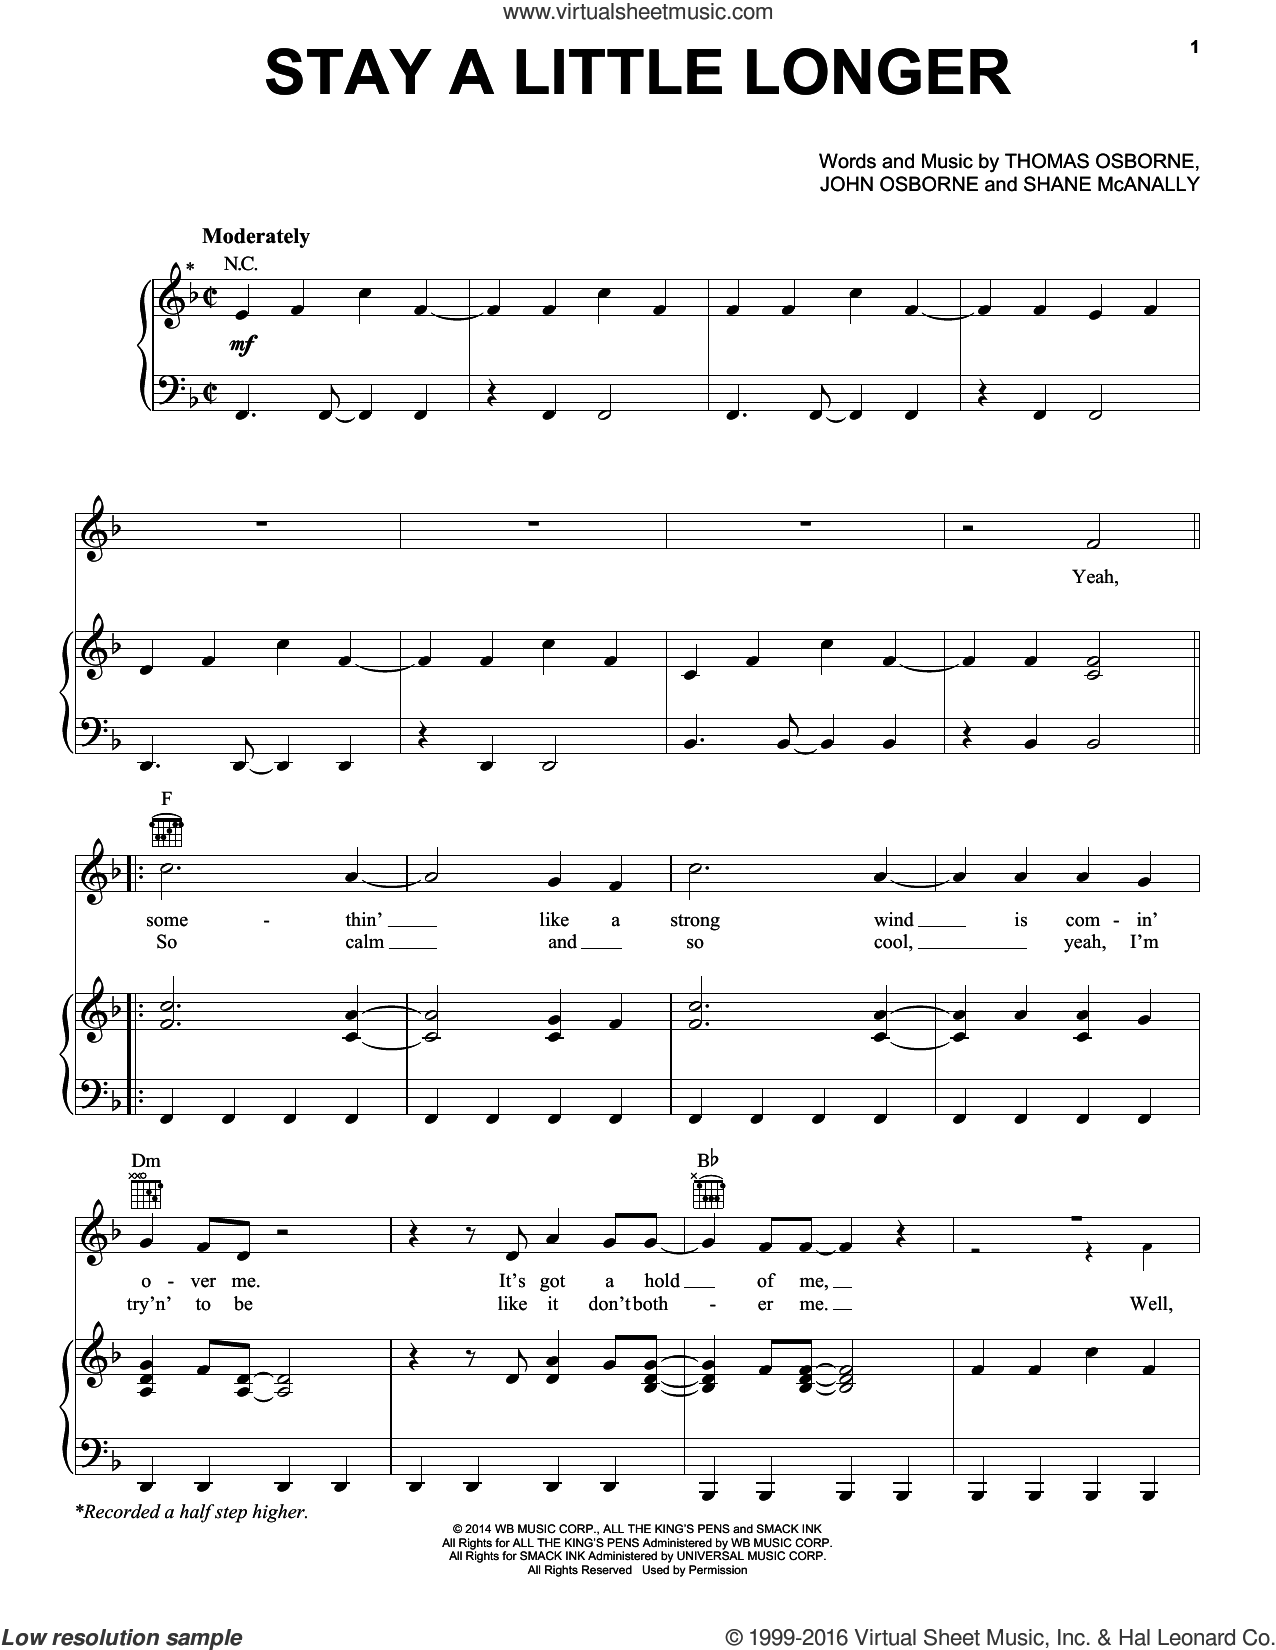 Stay A Little Longer sheet music for voice, piano or guitar by Brothers Osborne, John Osborne, Shane McAnally and Thomas Osborne, intermediate skill level